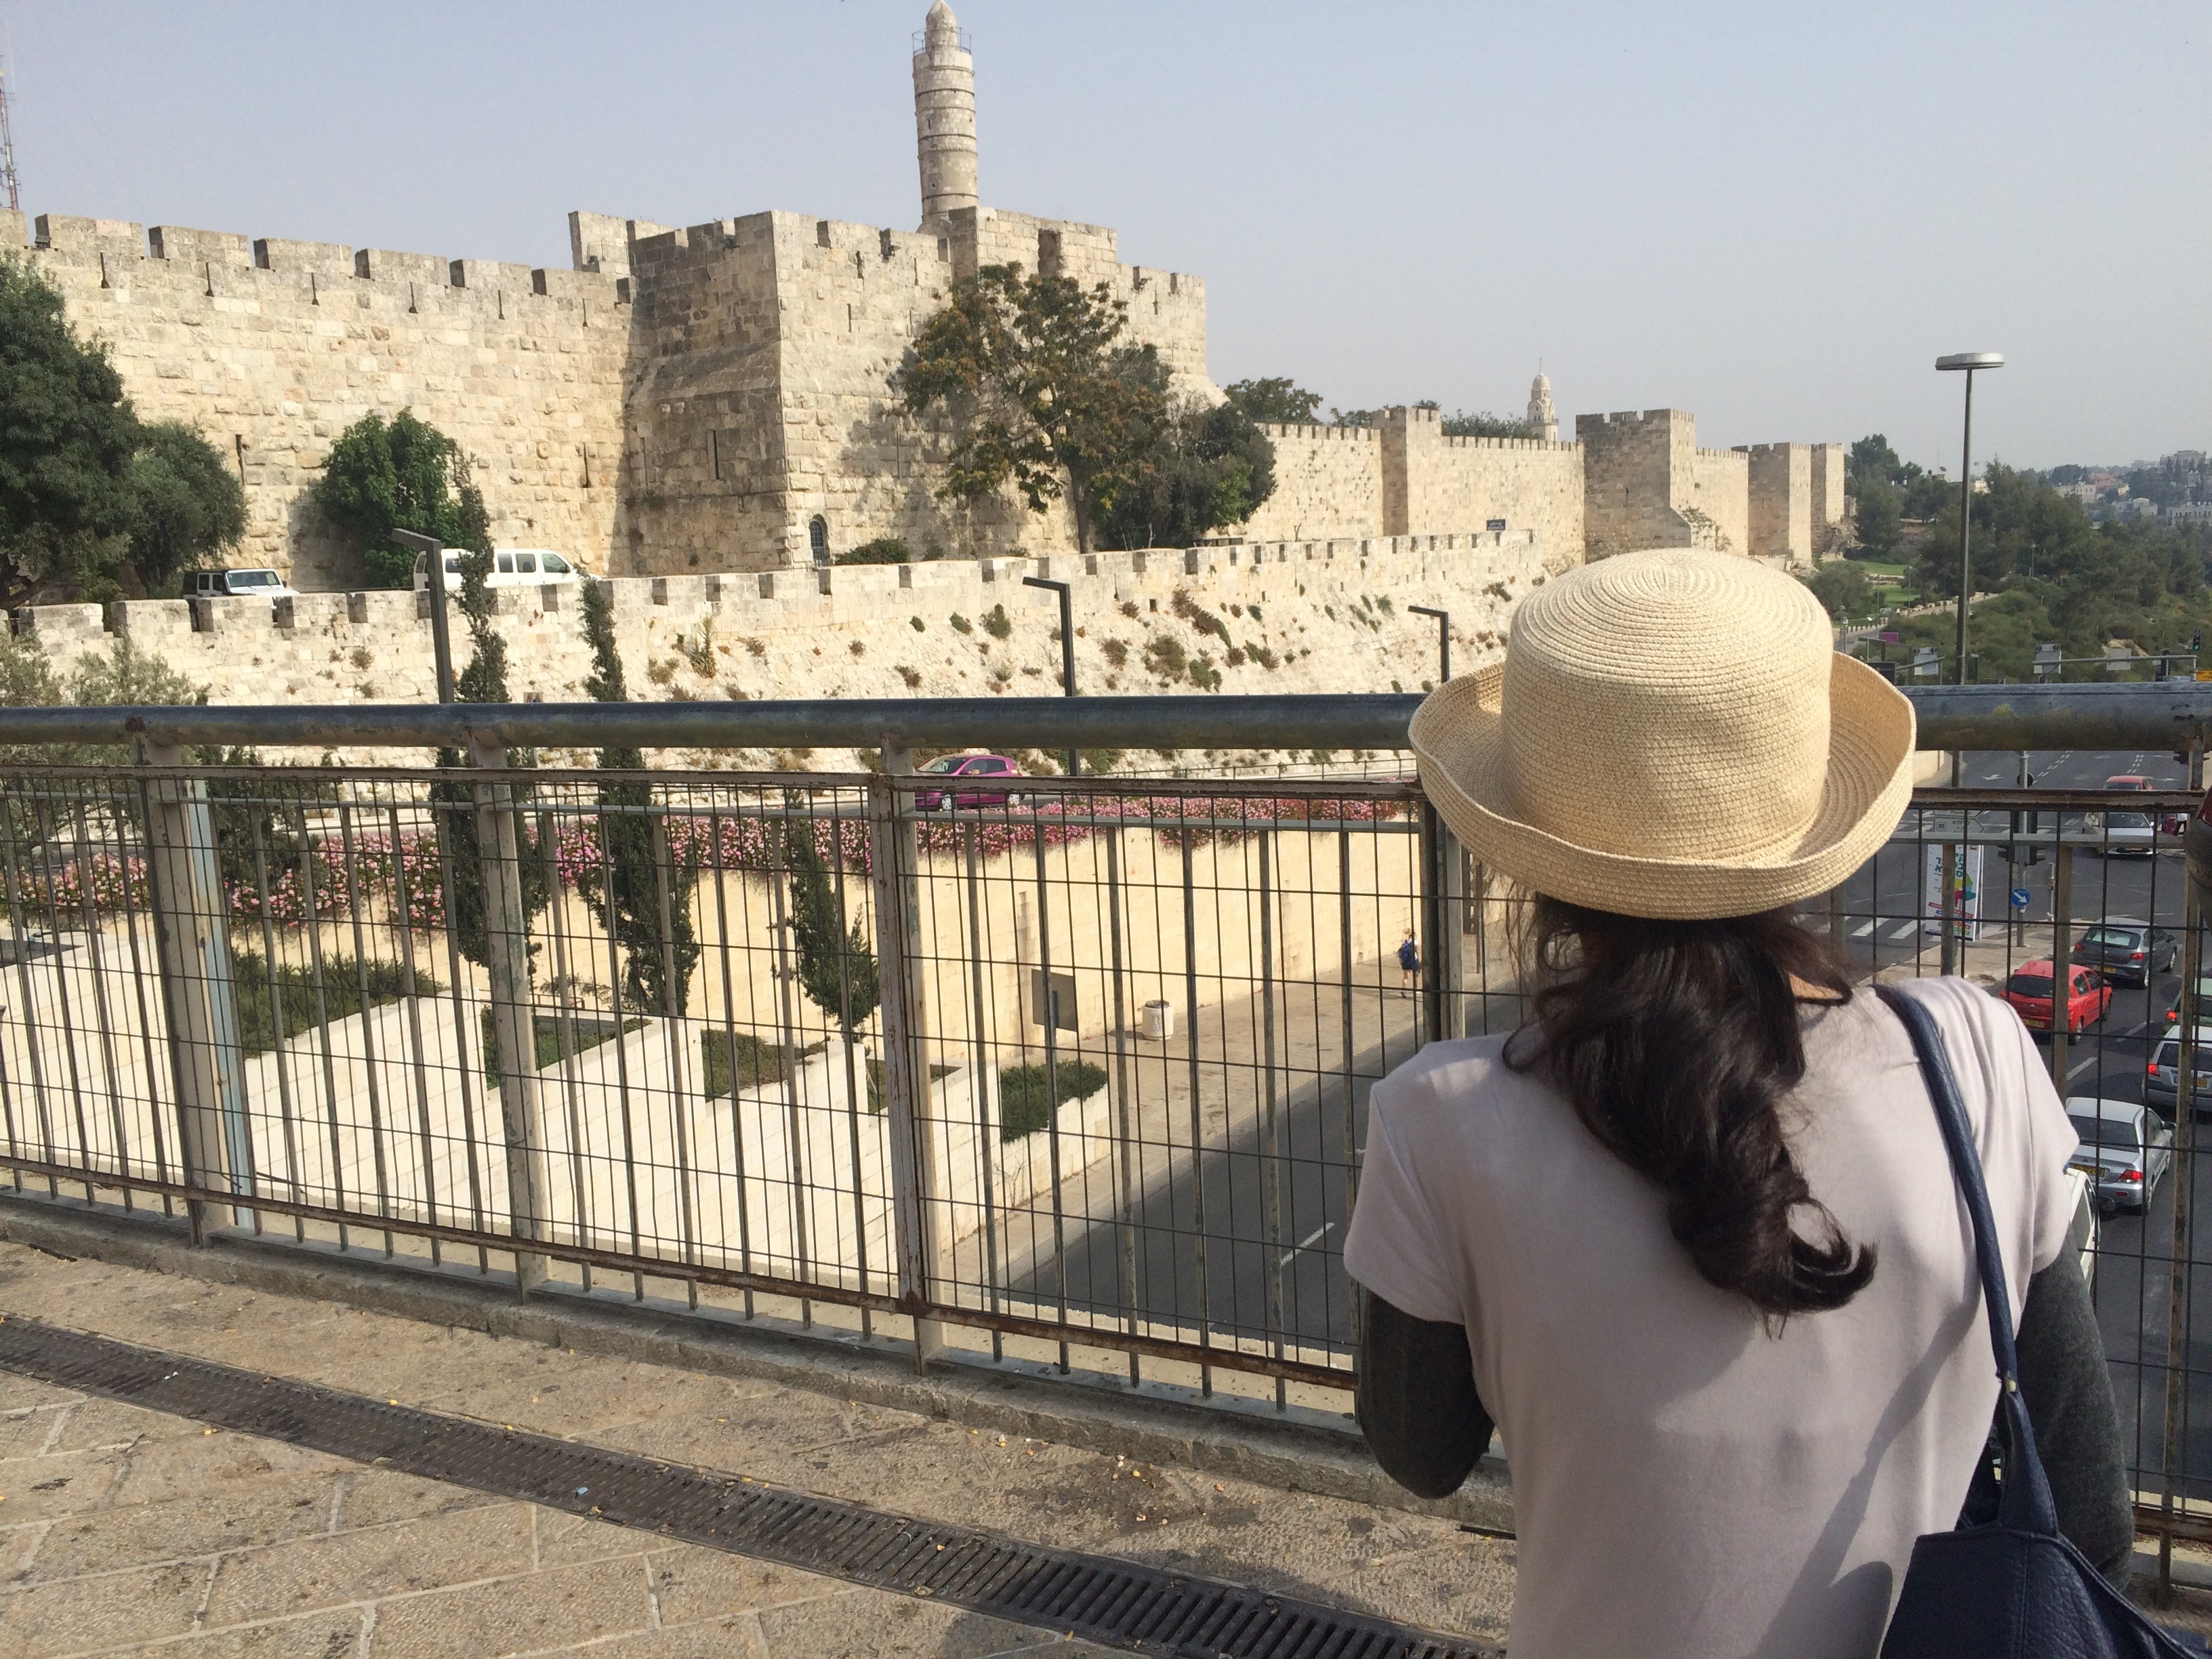 No matter how many times we see the Old City of Jerusalem, we are overcome with emotion.